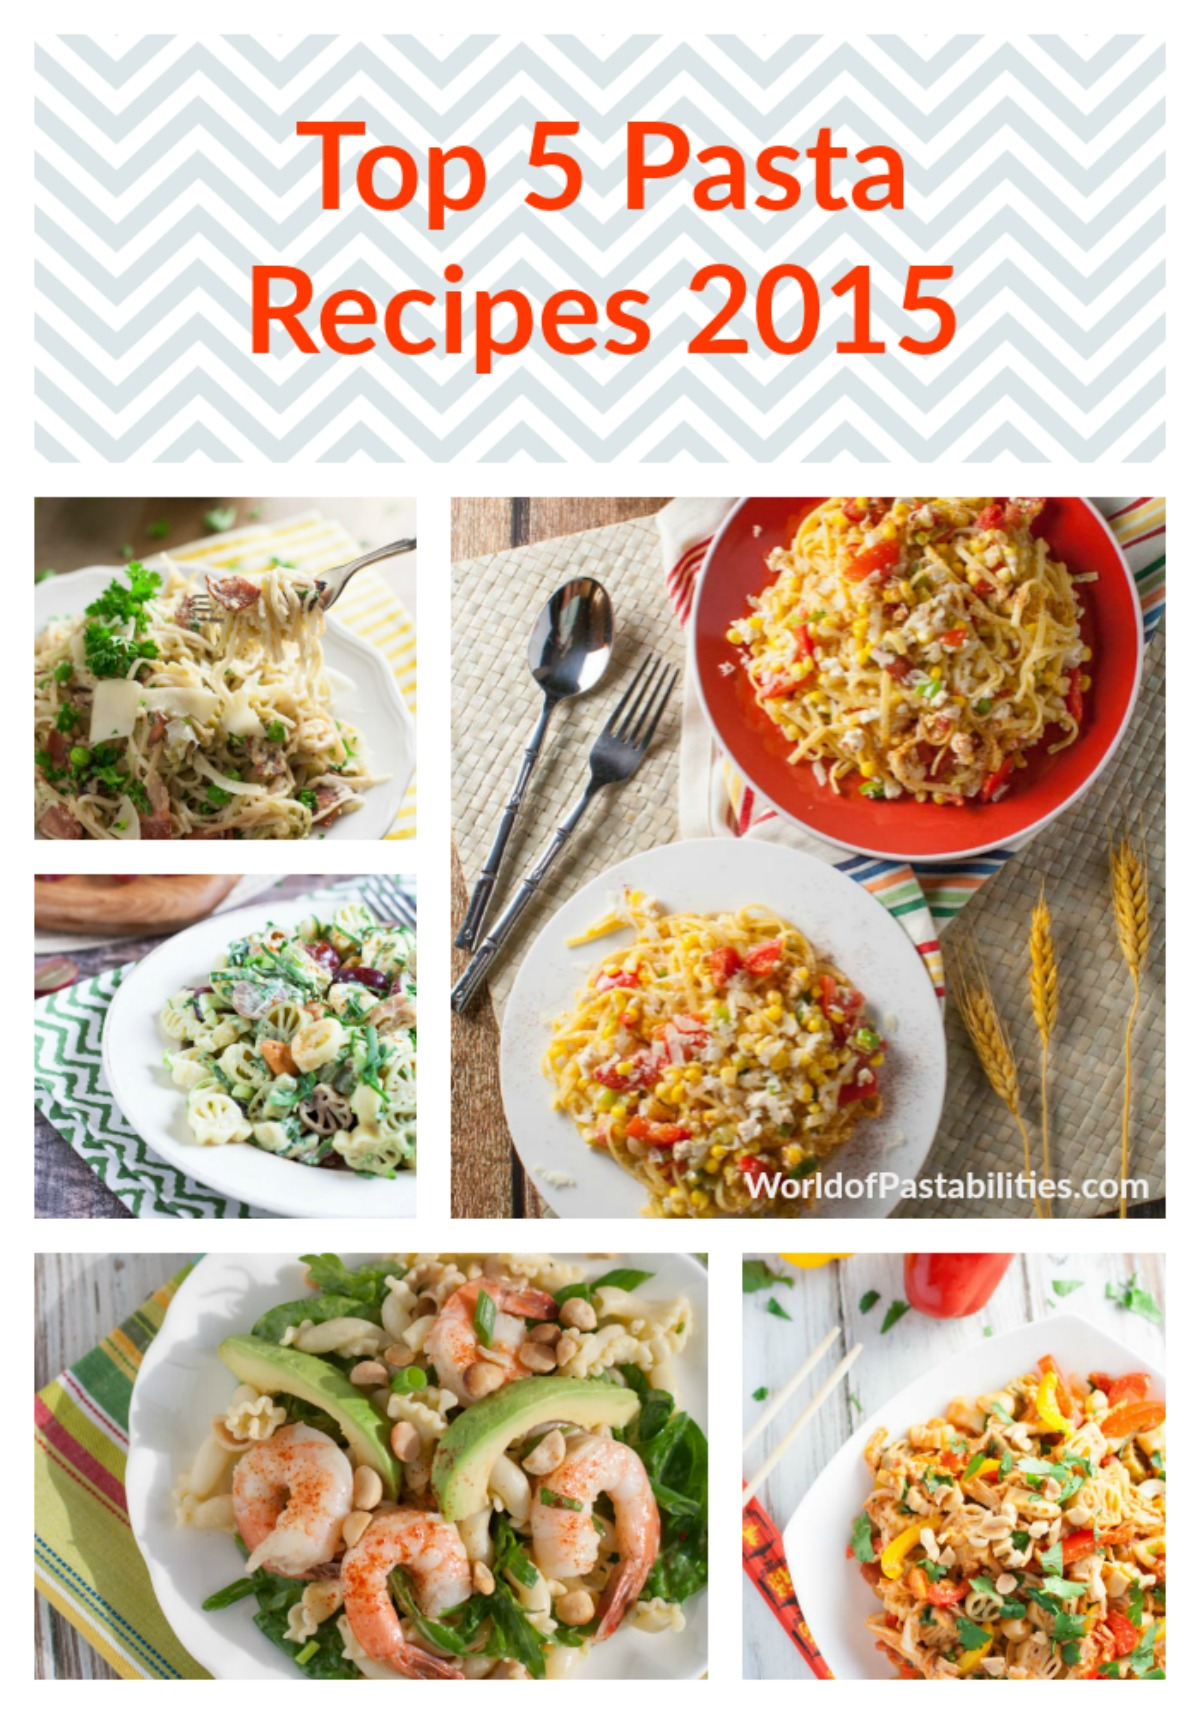 Top 5 Pasta Recipes 2015 | WorldofPastabilities.com | Tried and true favorite recipes from 2015! Must do's for 2016!